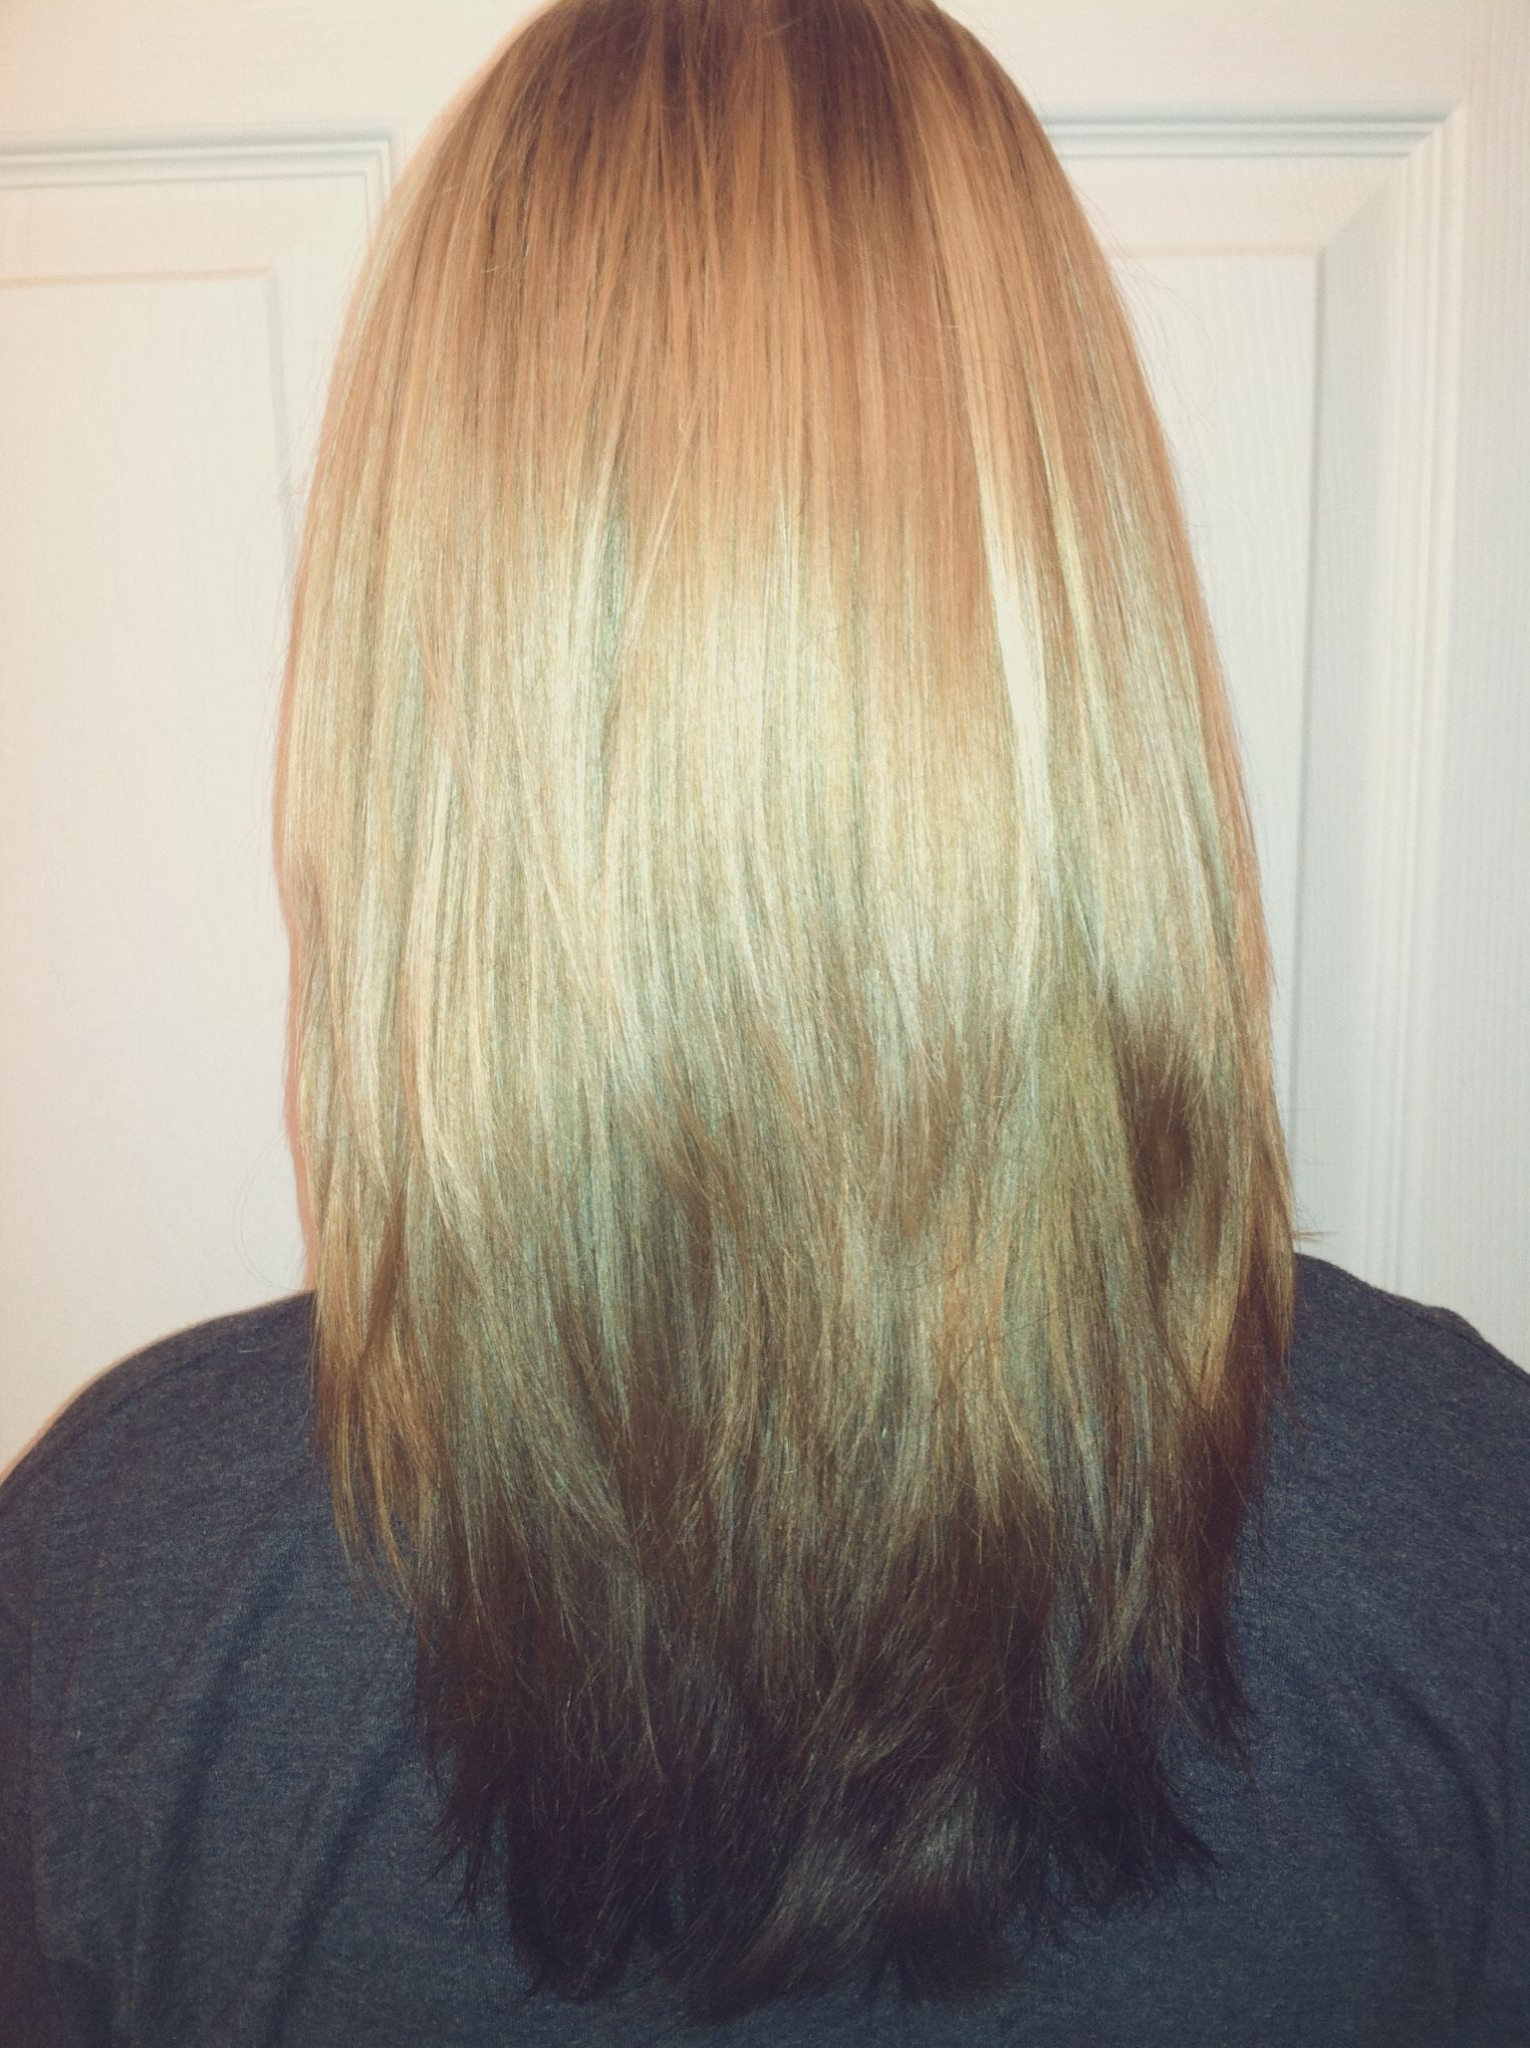 Popular Ombre Ed Blonde Lob Hairstyles Inside Reverse Ombre, Just Not That Dark On Your Ends And A Long Bob (View 17 of 20)